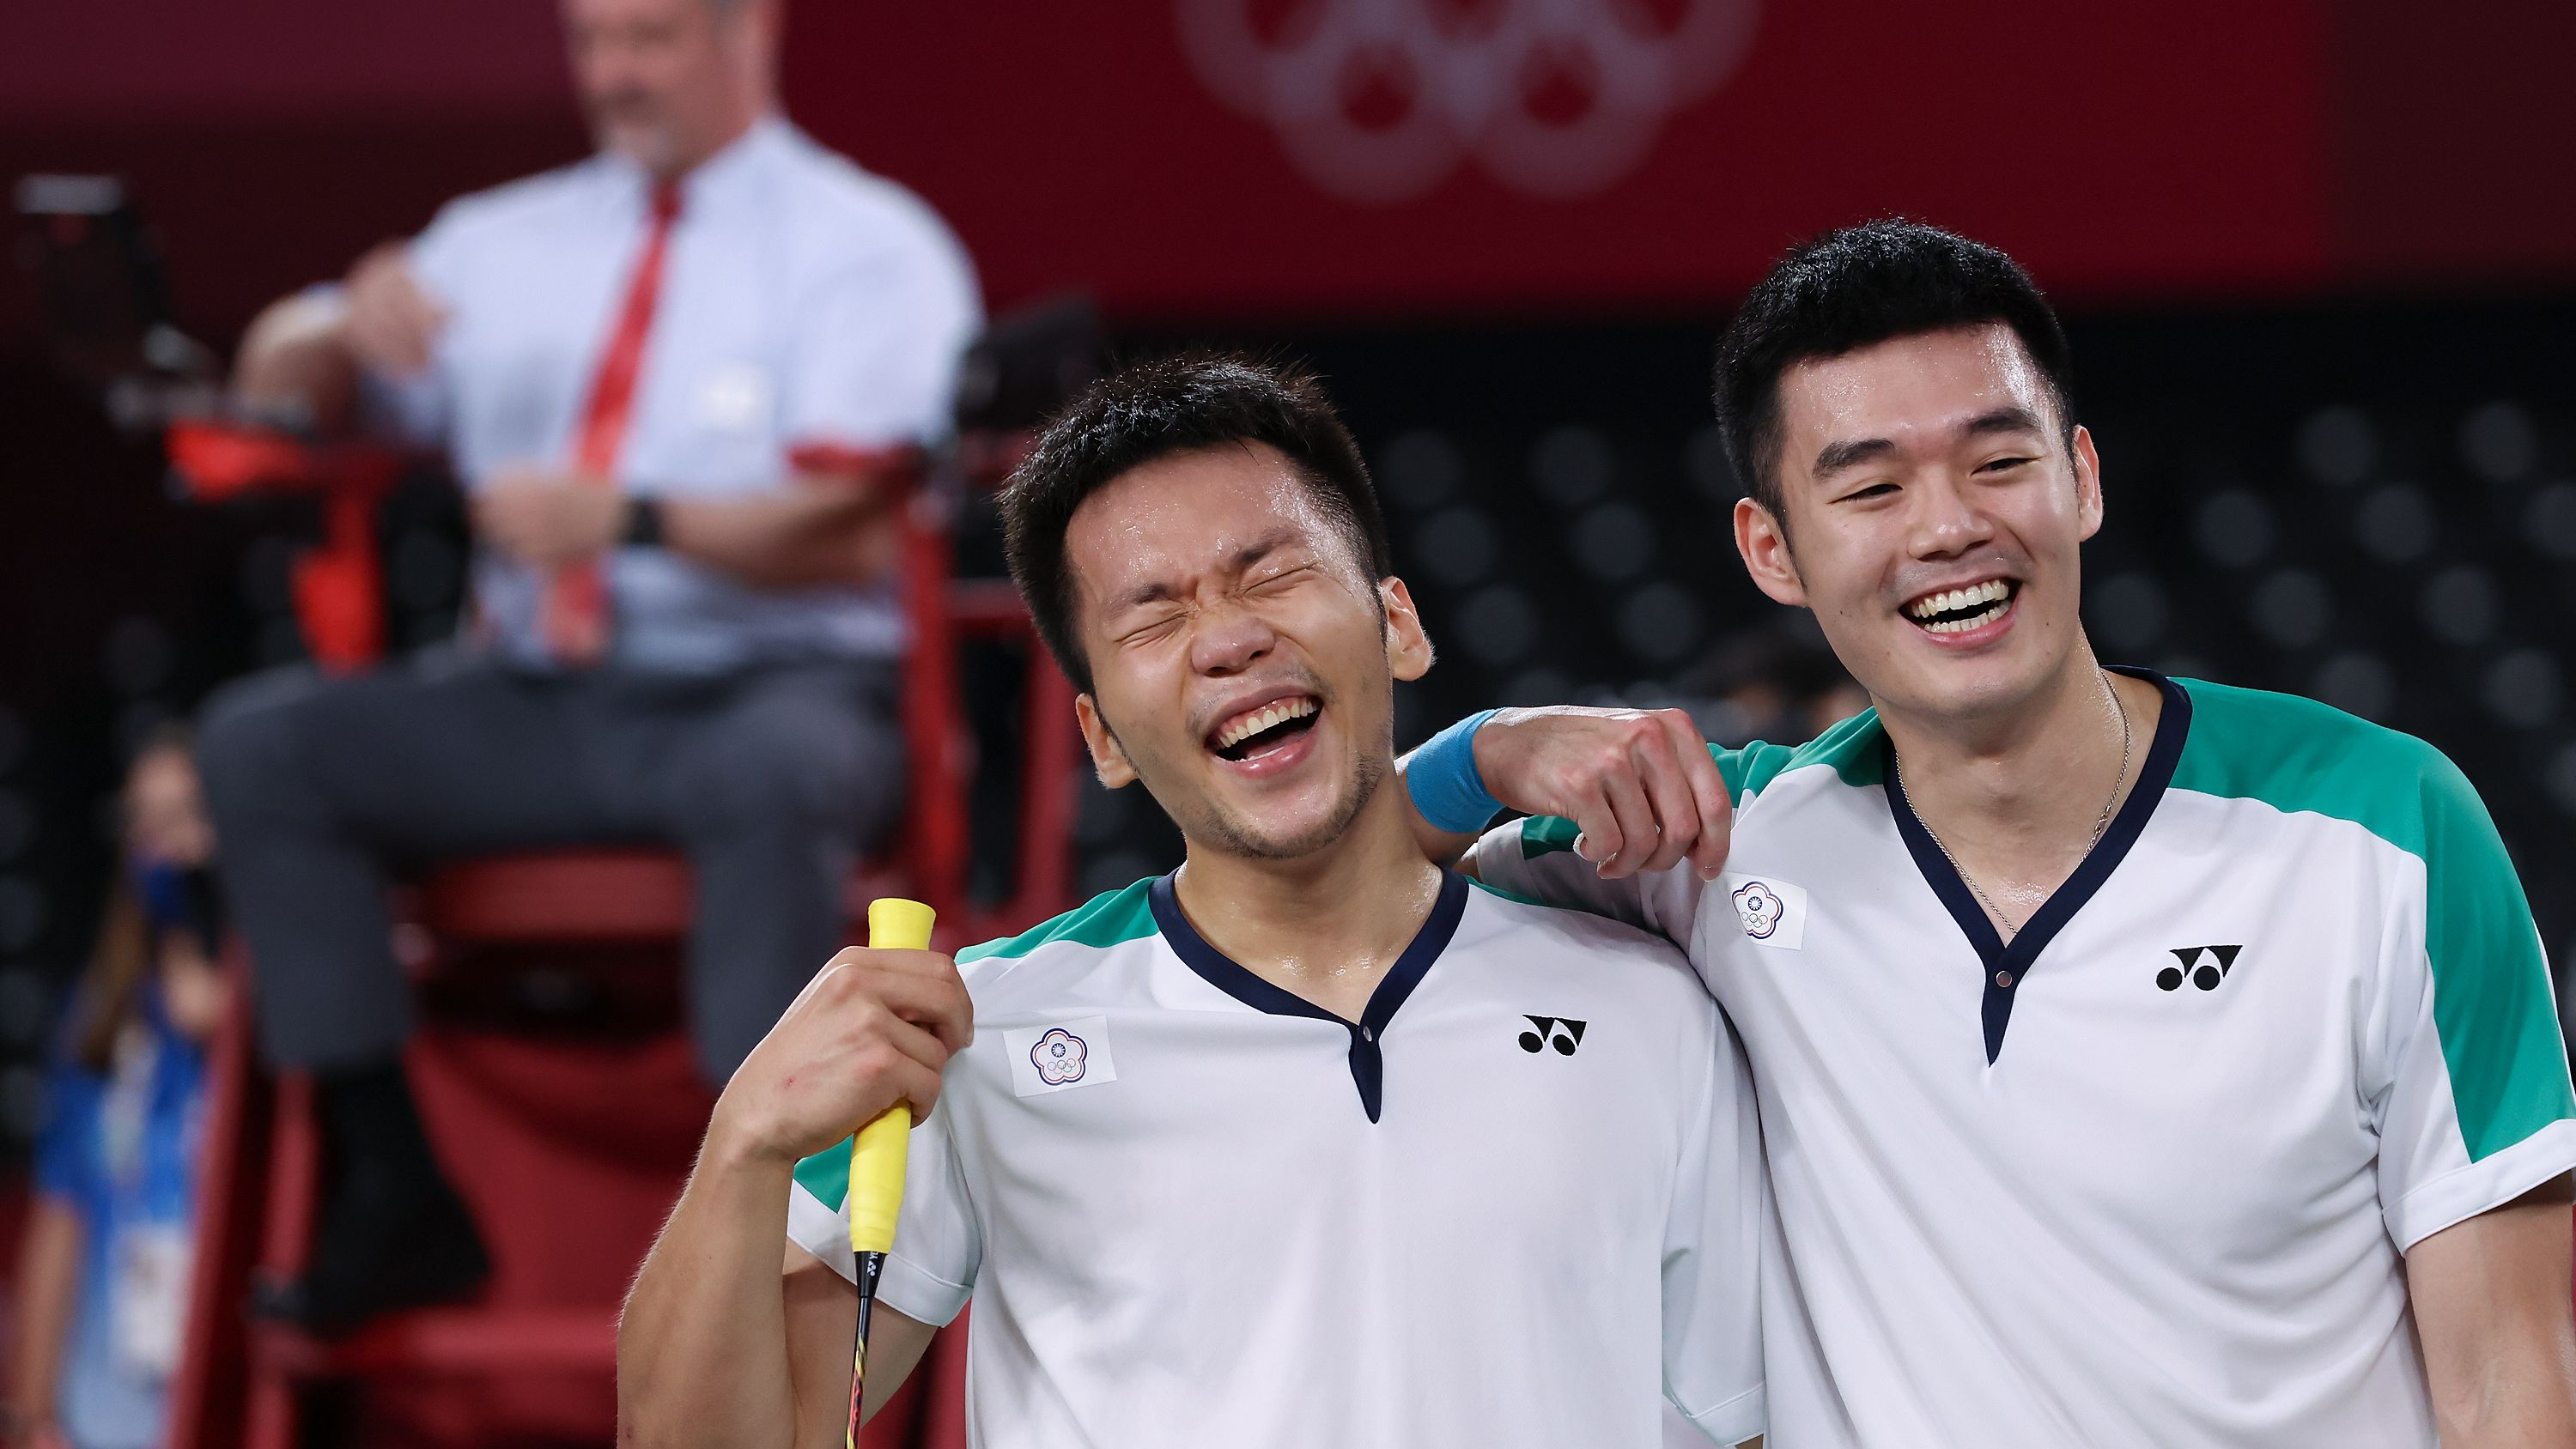 China infuriated by Olympic loss to 'the enemy'